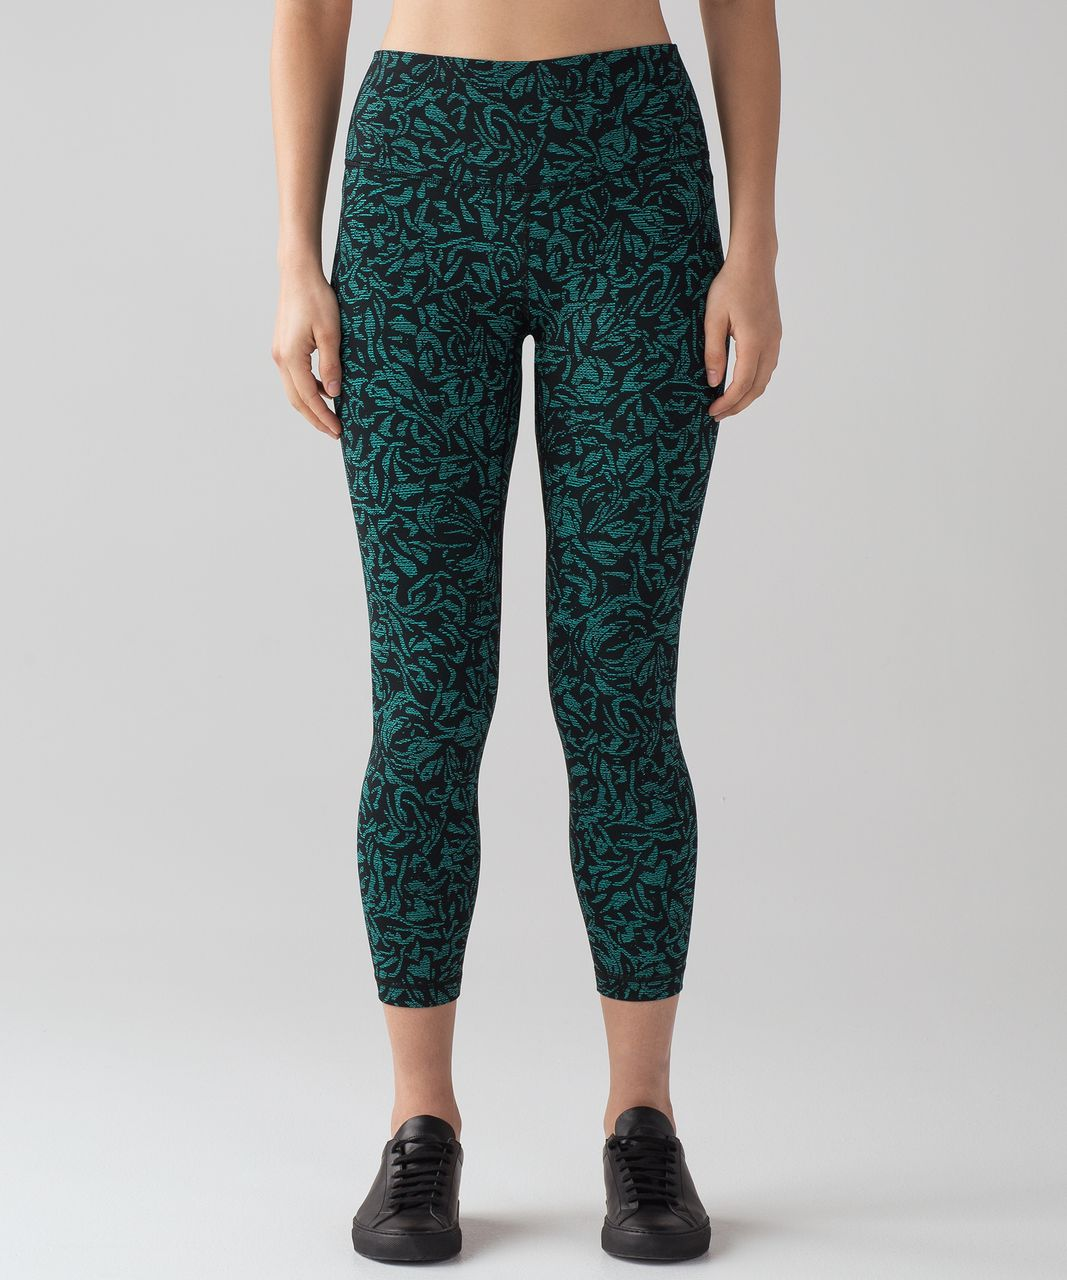 Lululemon Wunder Under Hi-Rise 7/8 Tight (Full-On Luxtreme) - Thrive Viridian Green Black